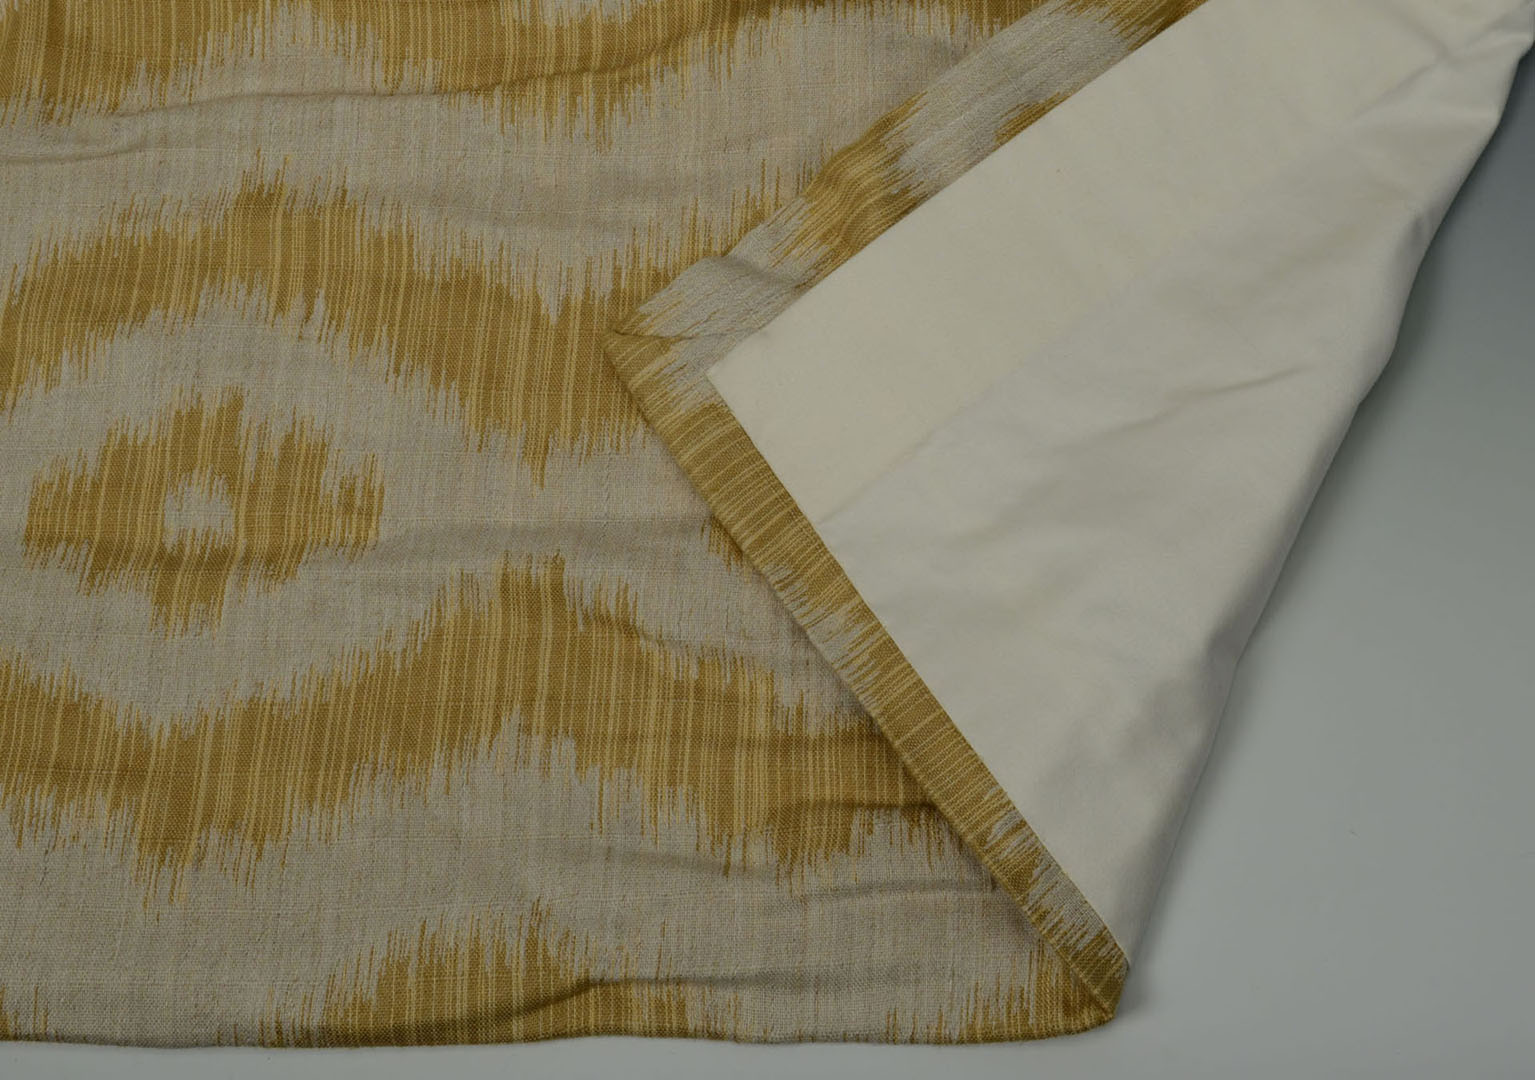 Lot 2872355: Hodsoll McKenzie draperies and wooden rods